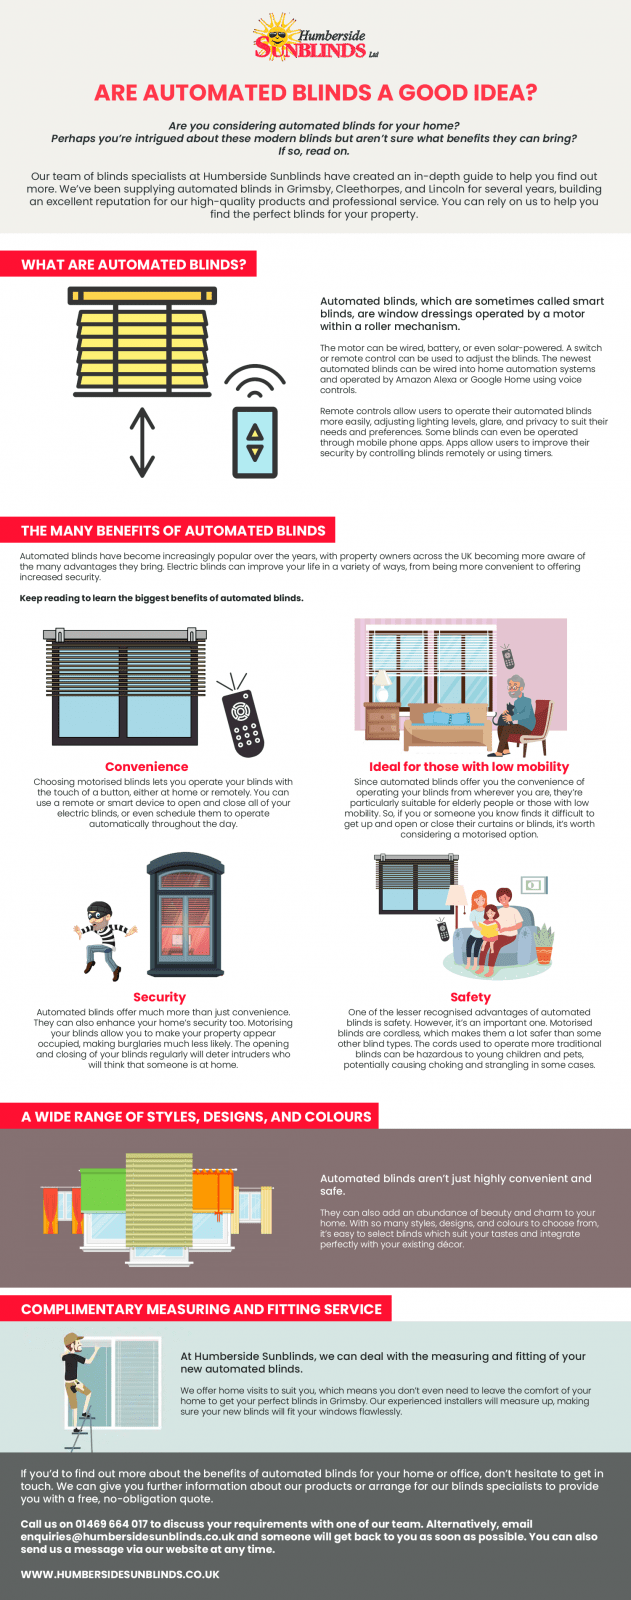 are automated blinds a good idea infographic